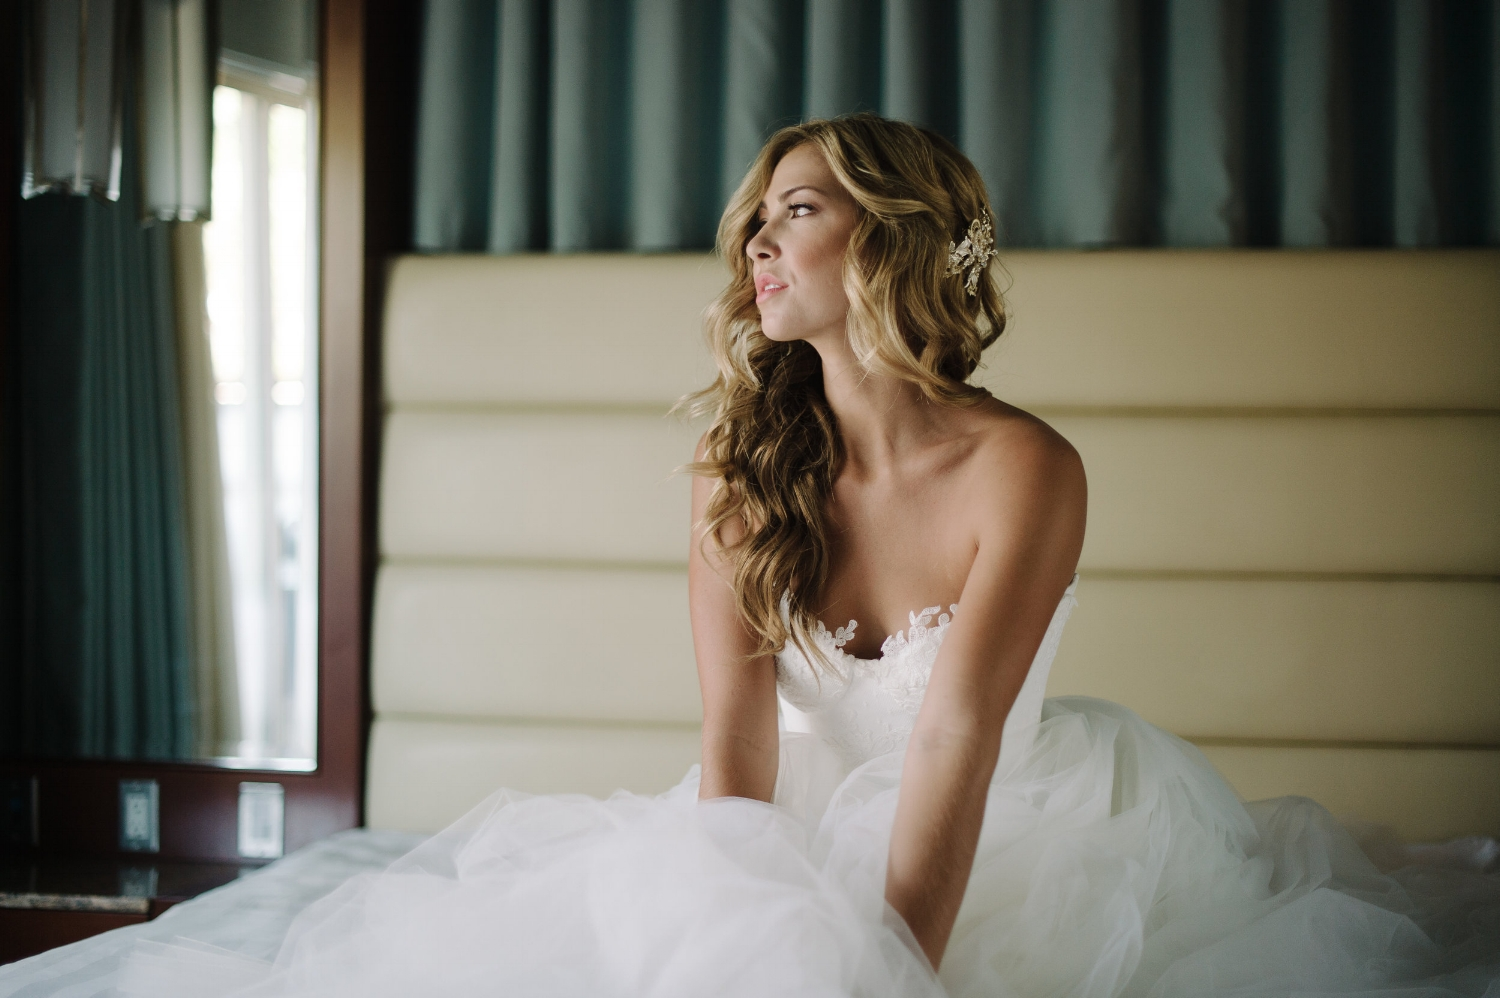 Wedding Photos with Blonde Long Hair Down. Bridal Hairstyles and Makeup by Vanity Belle in Orange County (Costa Mesa) and San Diego (La Jolla)